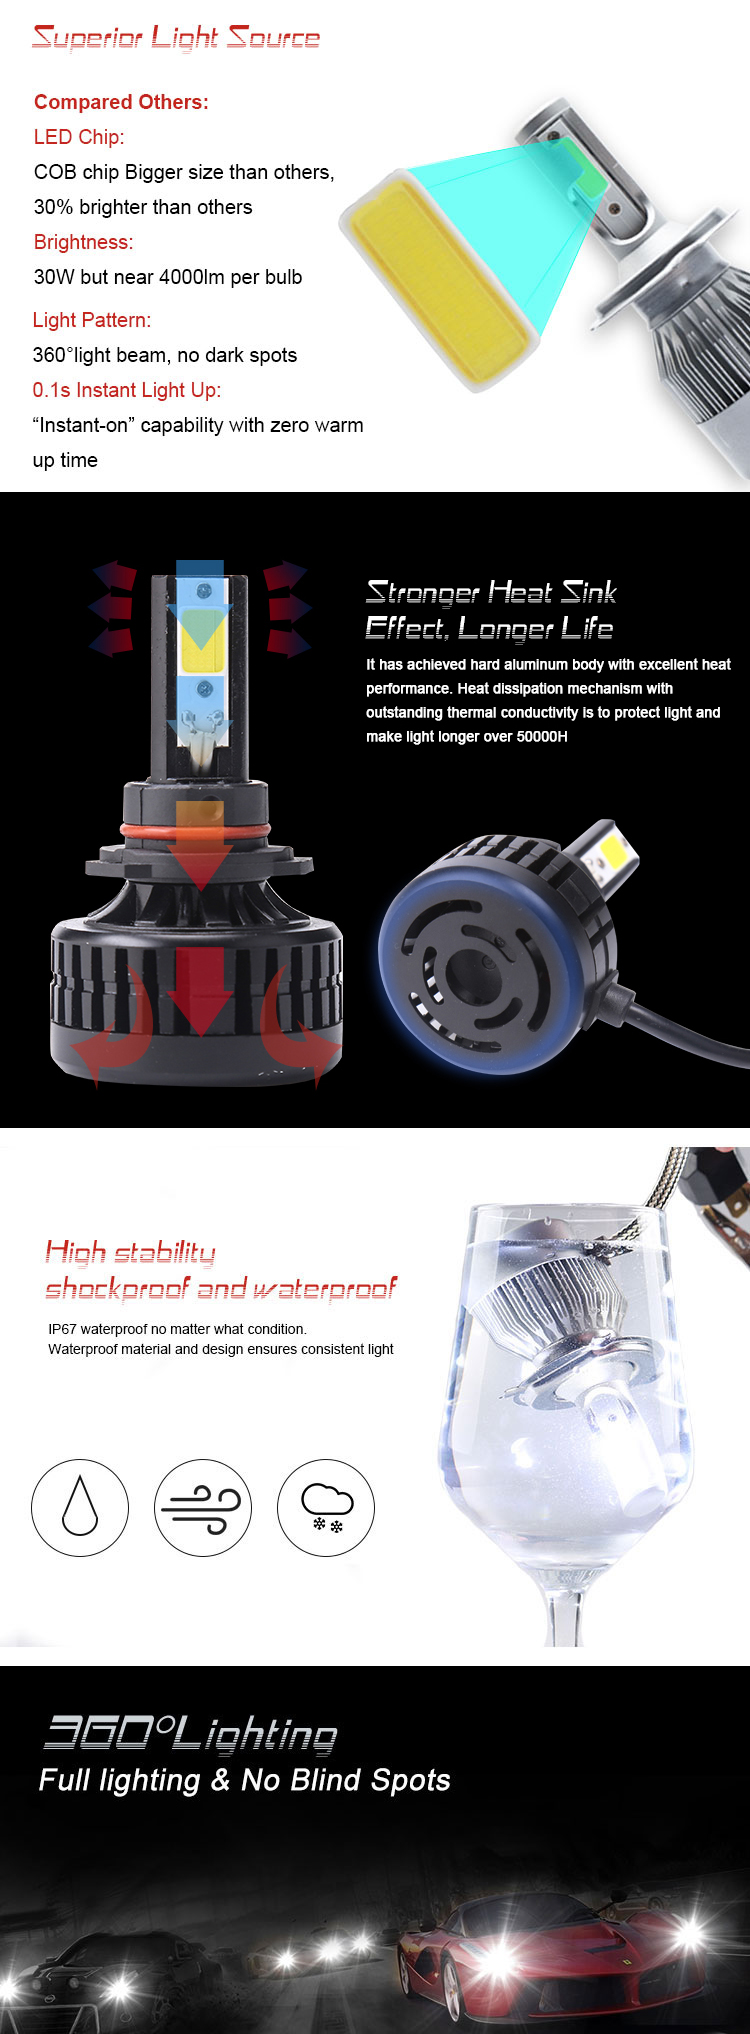 Best quality 36W COB 4000lumen H1 H3 H4 H7 H8 H11 H13 9005 9006 car led replacement headlight bulbs